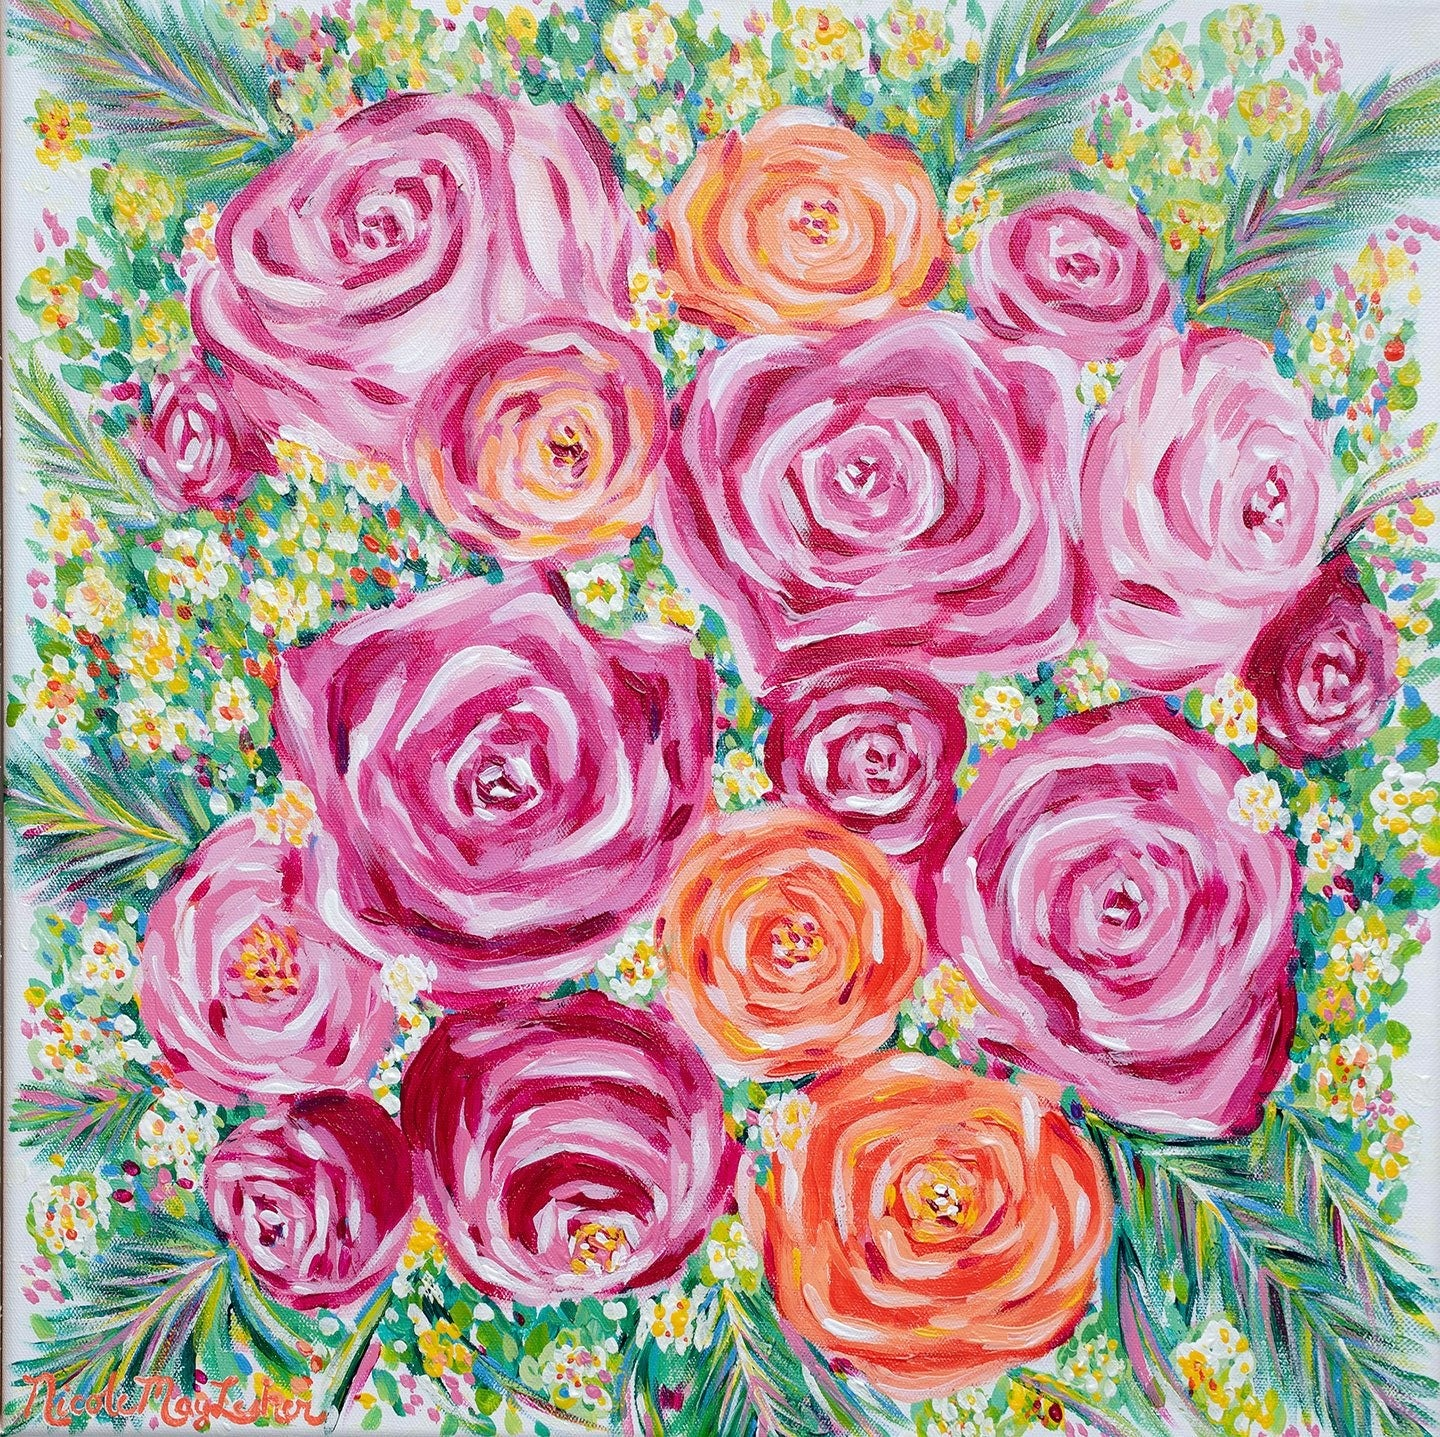 Spring Bouquet | Colorful Pink Flower Bouquet Painting | Wall Art | Home Decor | Nicole May Lesher